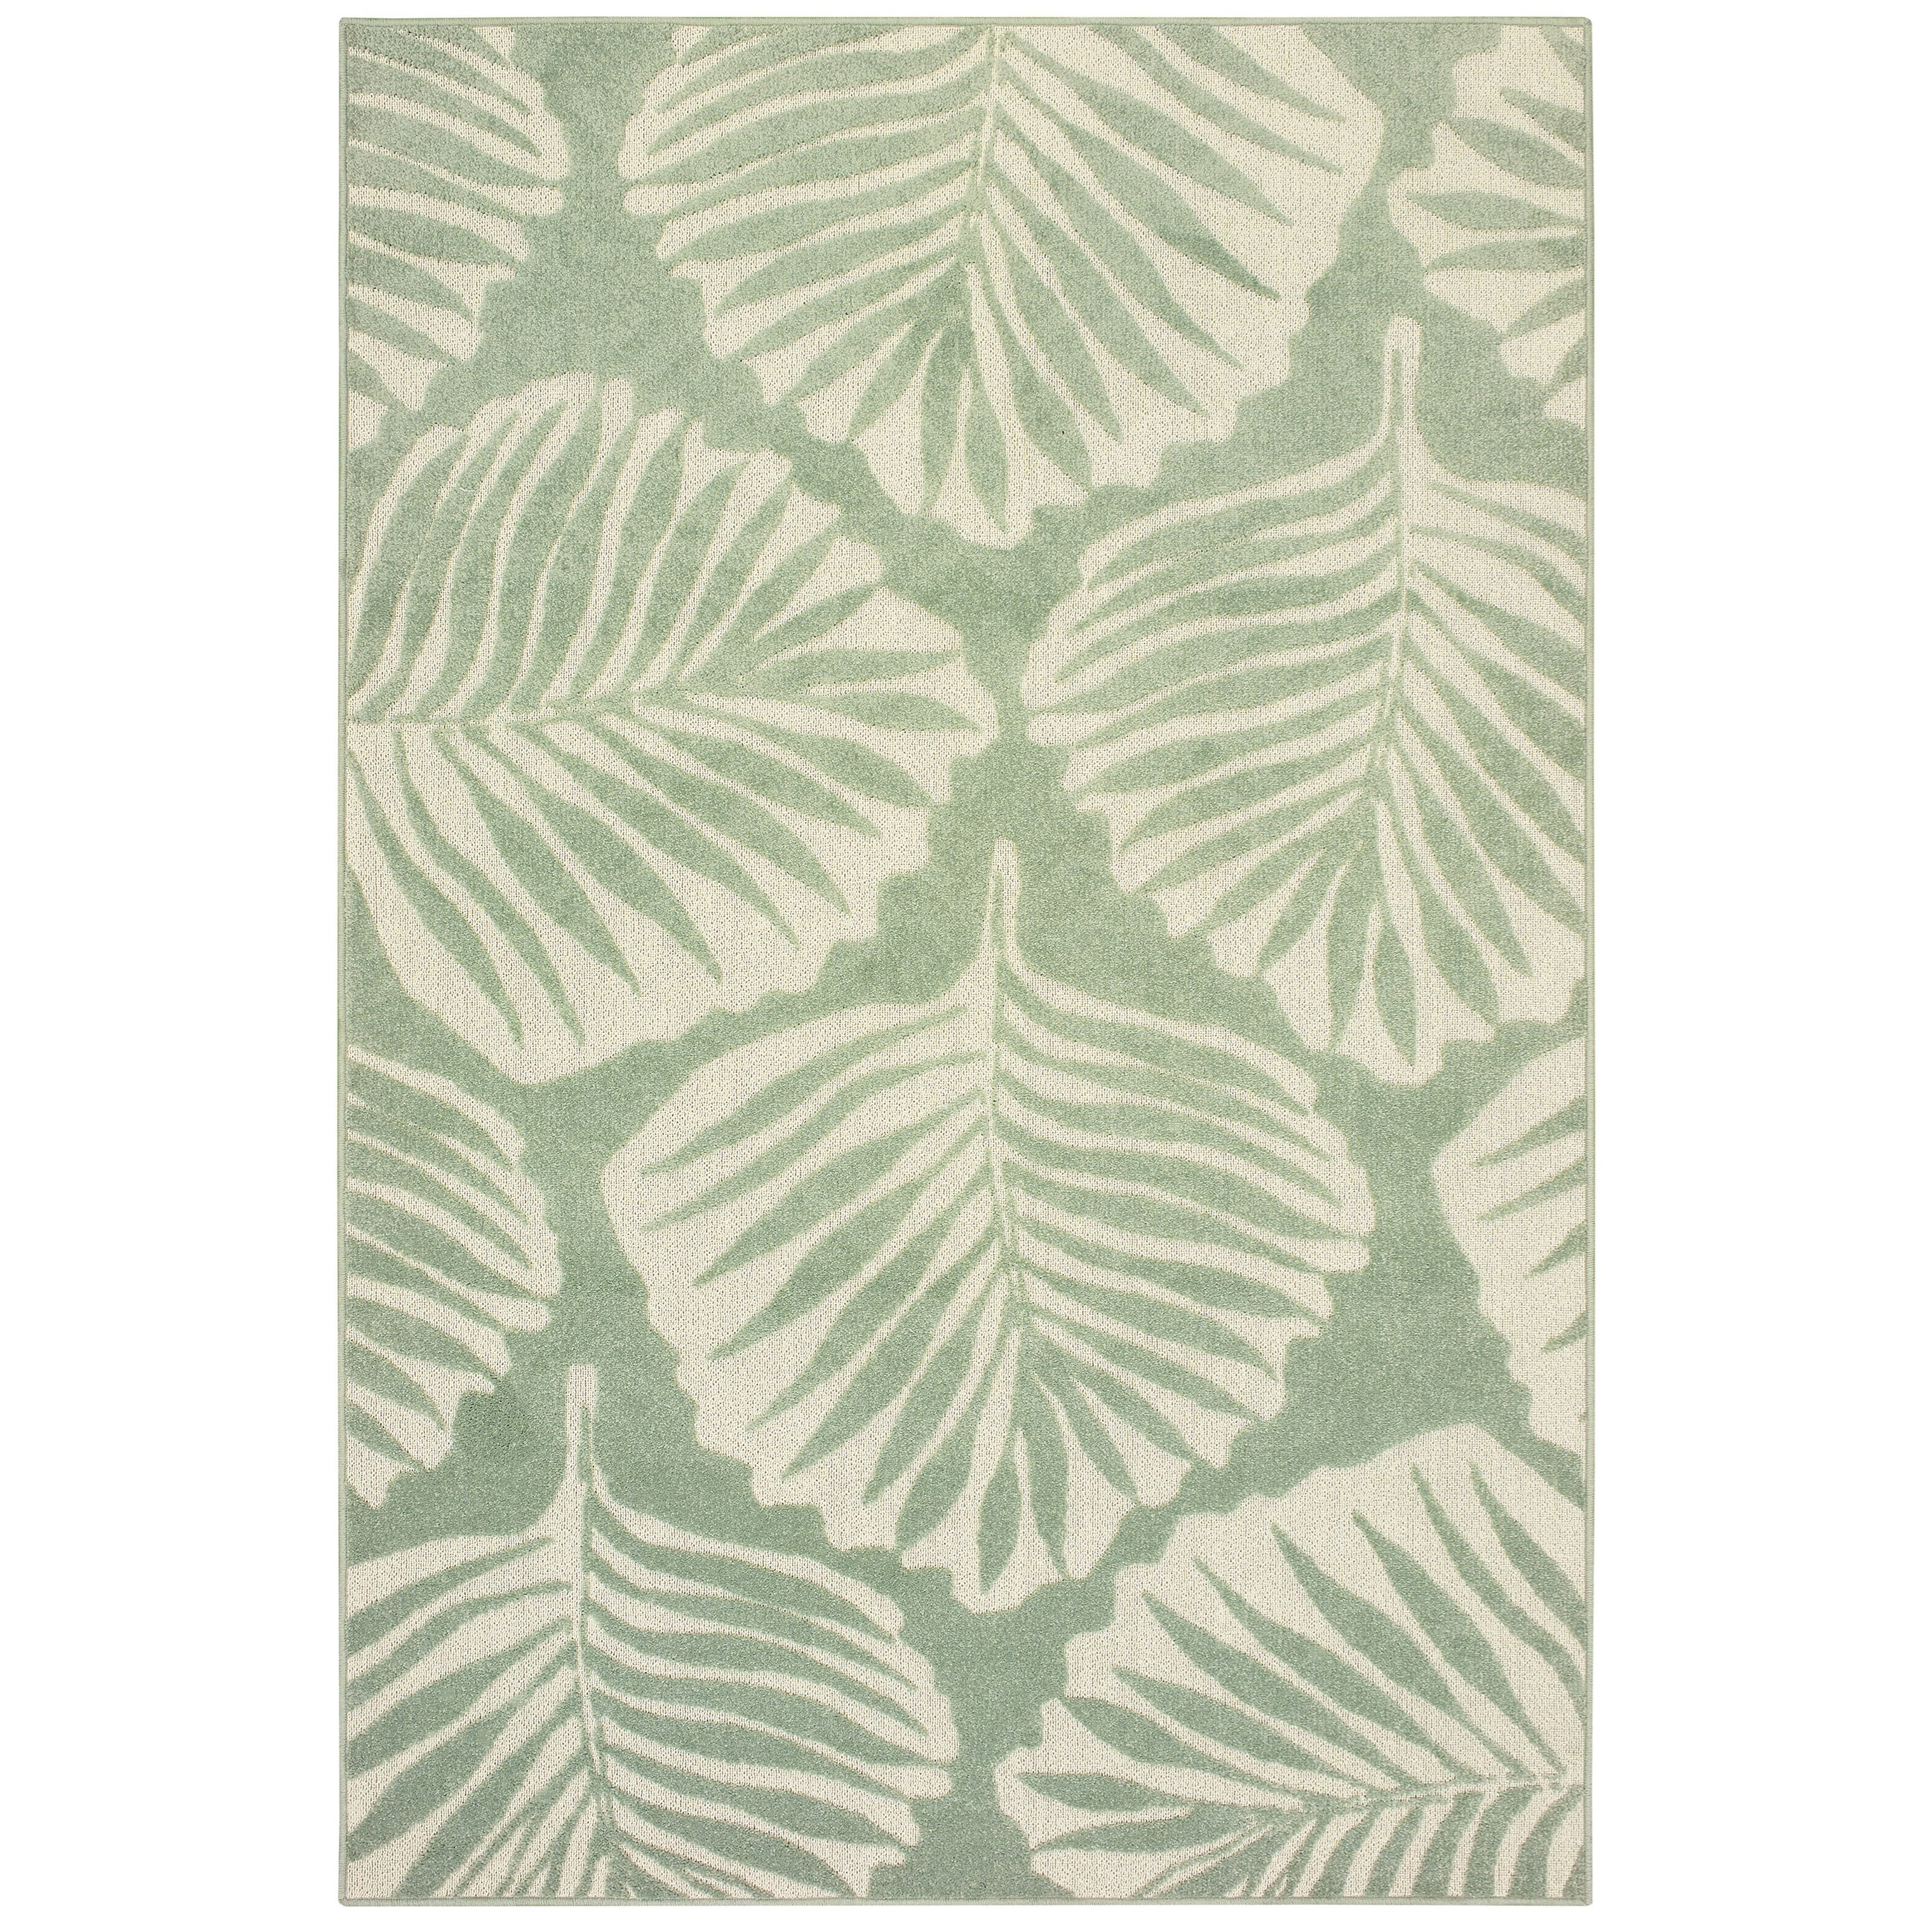 """Barbados 9'10"""" X 12'10"""" Rectangle Rug by Oriental Weavers at Esprit Decor Home Furnishings"""